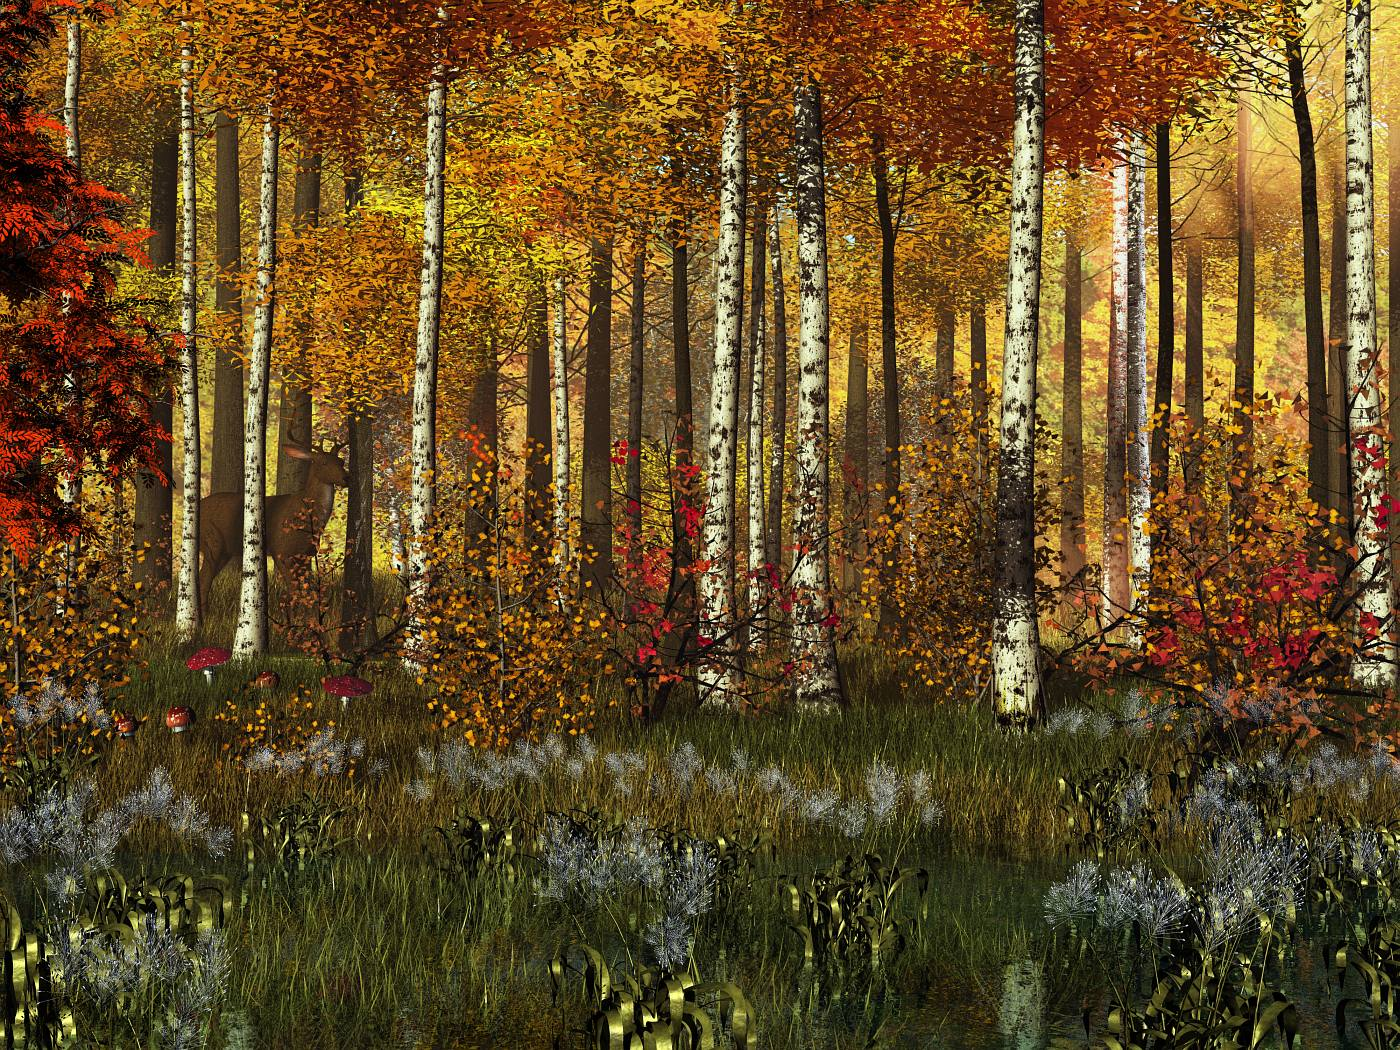 Golden Fall Forest by xmas-kitty